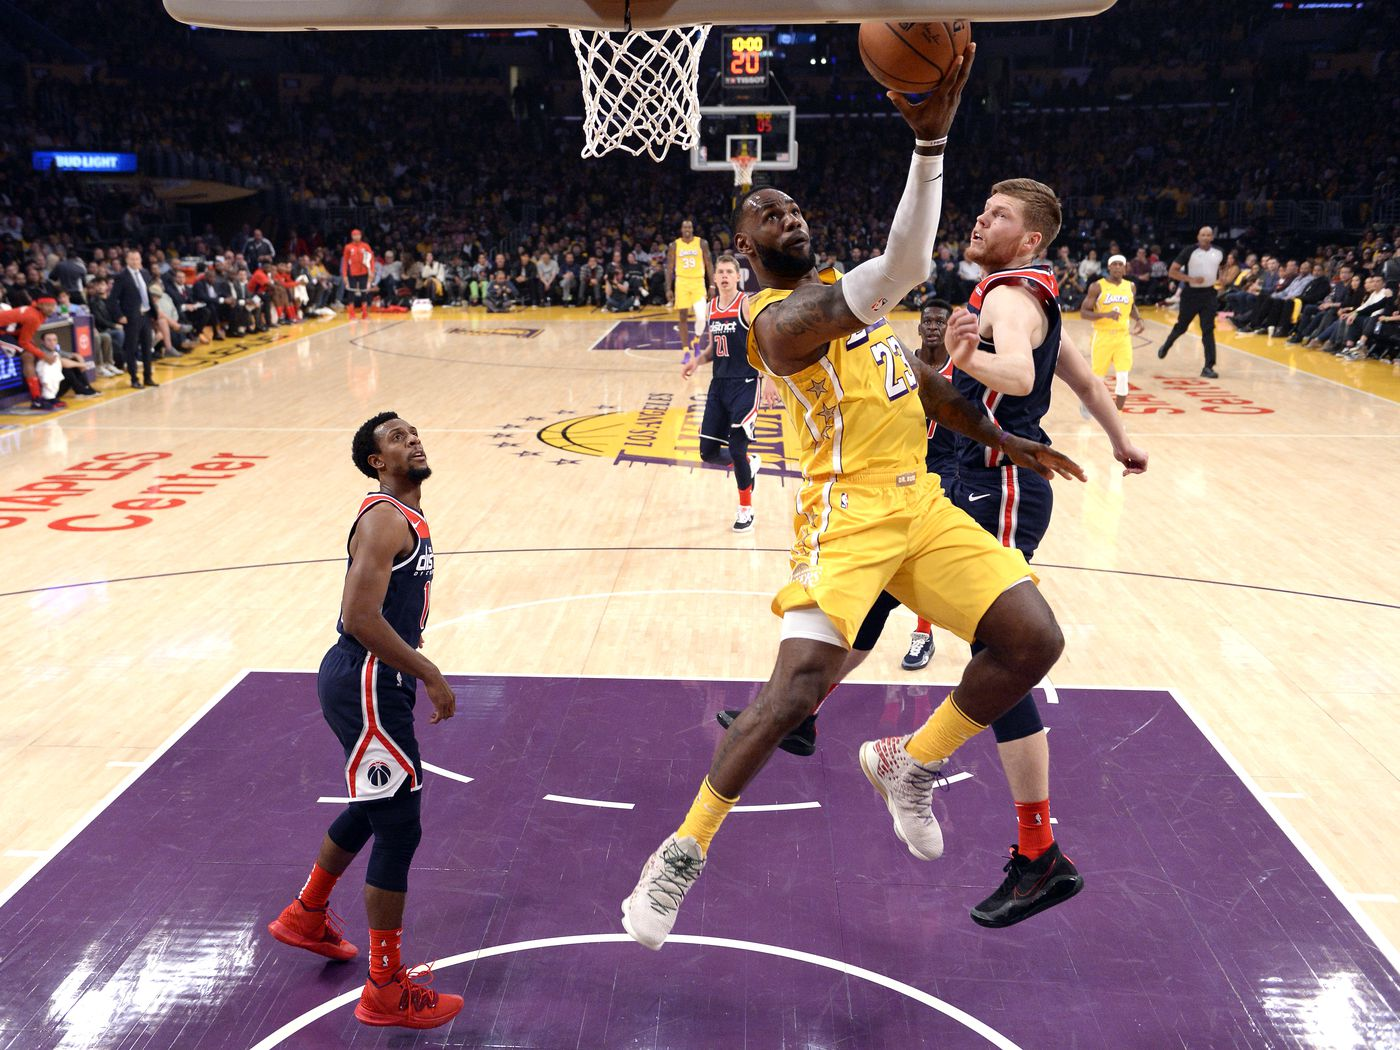 Nba Trade Rumors Lakers One Of Teams With Interest In Davis Images, Photos, Reviews